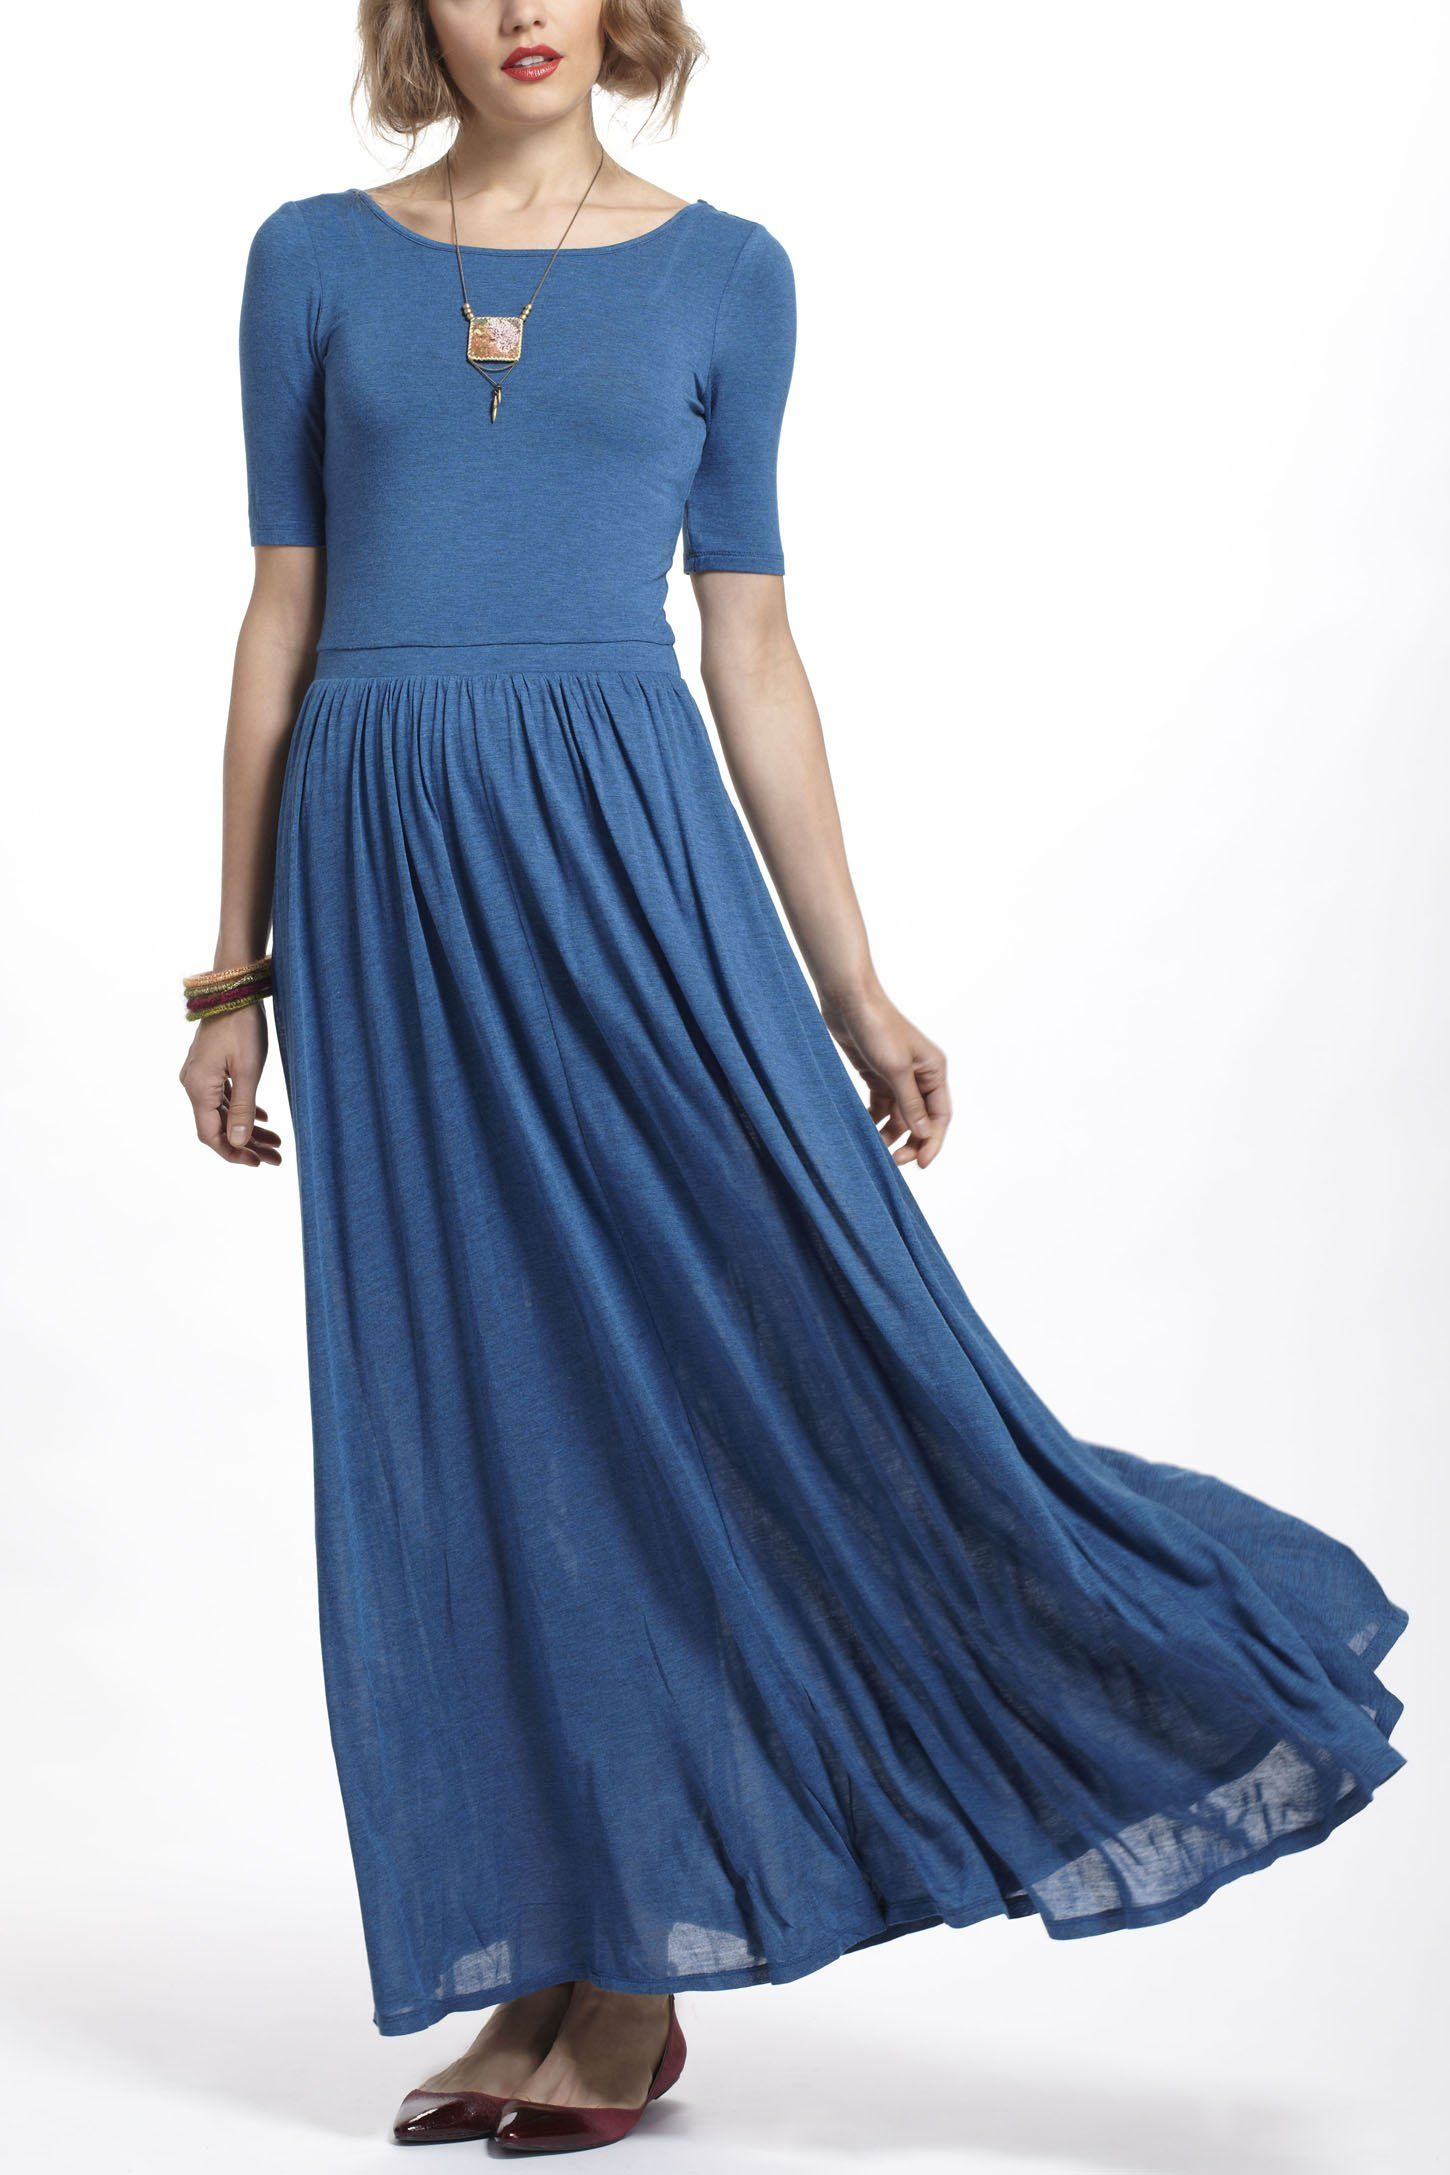 Scoopback maxi dress current wish for Anthropologie mural maxi dress